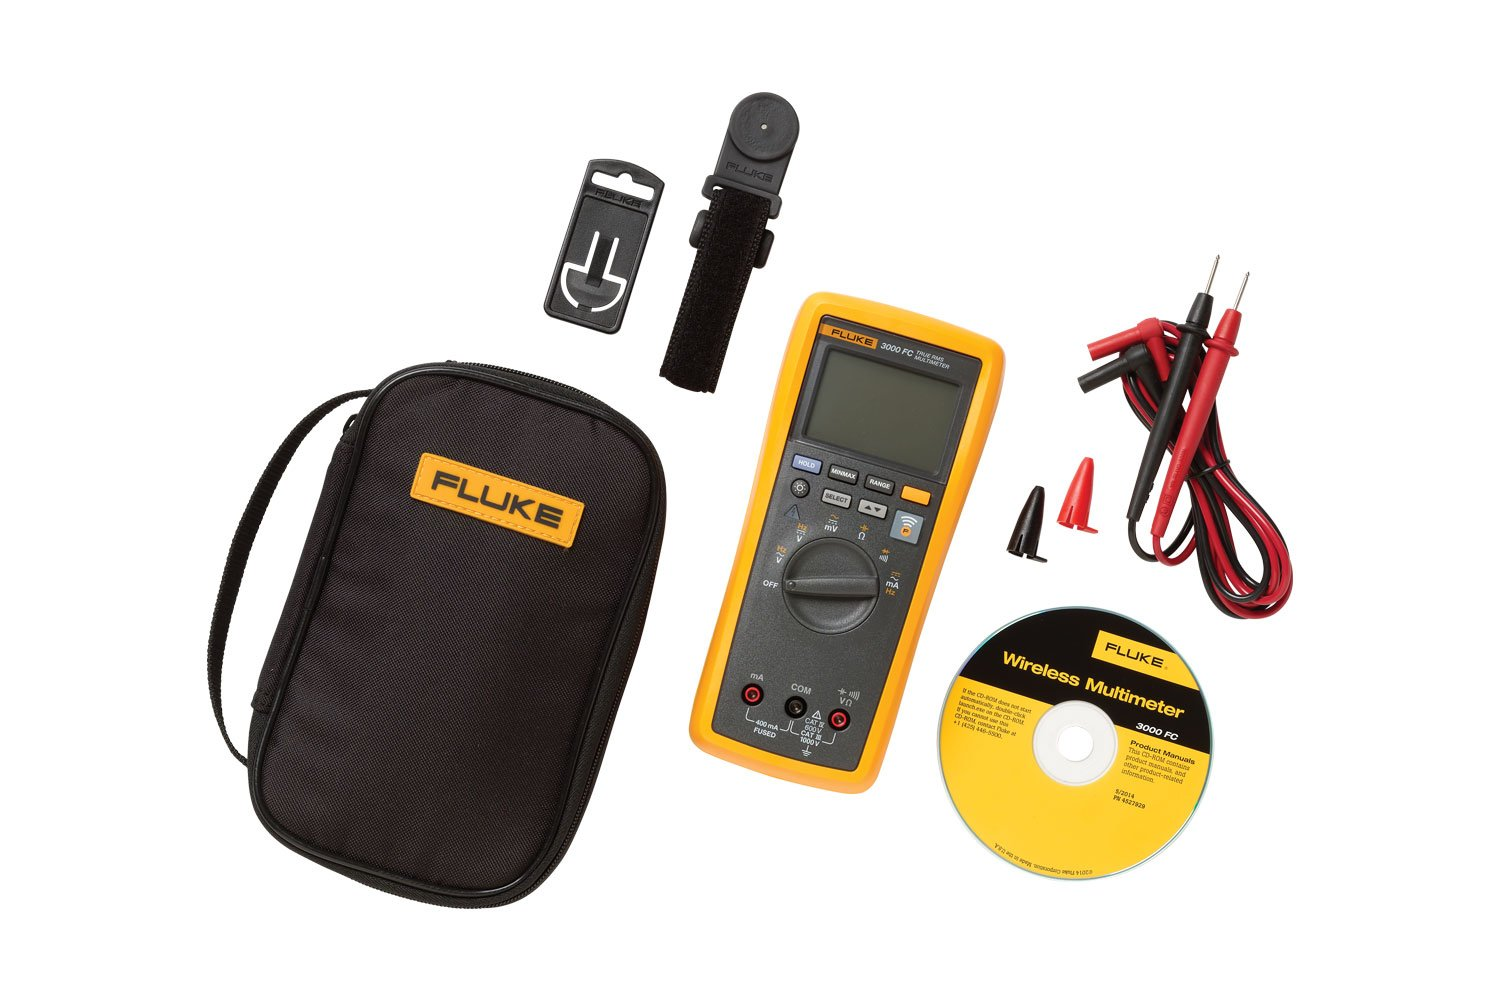 Fluke 3000 Fc Tpak Combo Kit Laptop Multimeter Tests Checking Voltage And Short Circuits